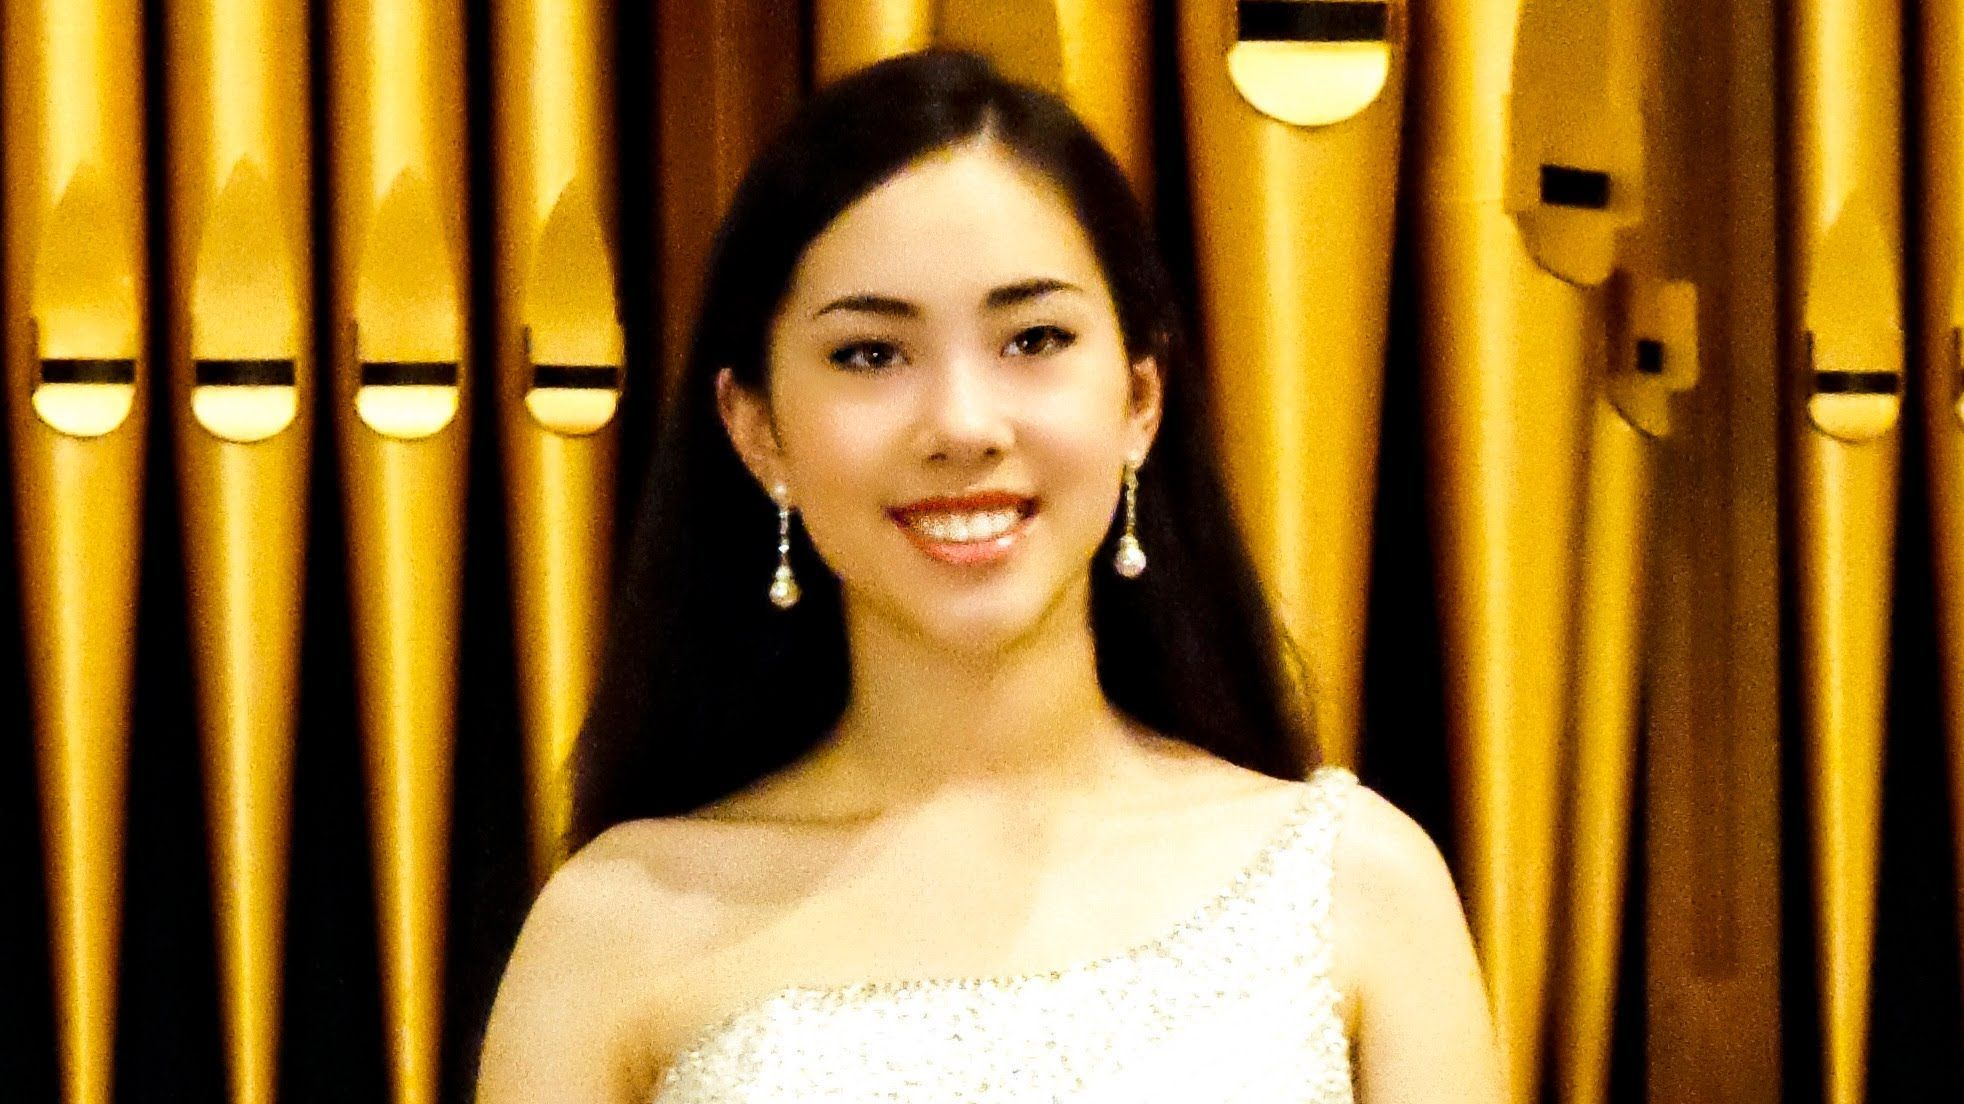 Ave Maria Schubert Performed By Elena House 13 Yrs Com